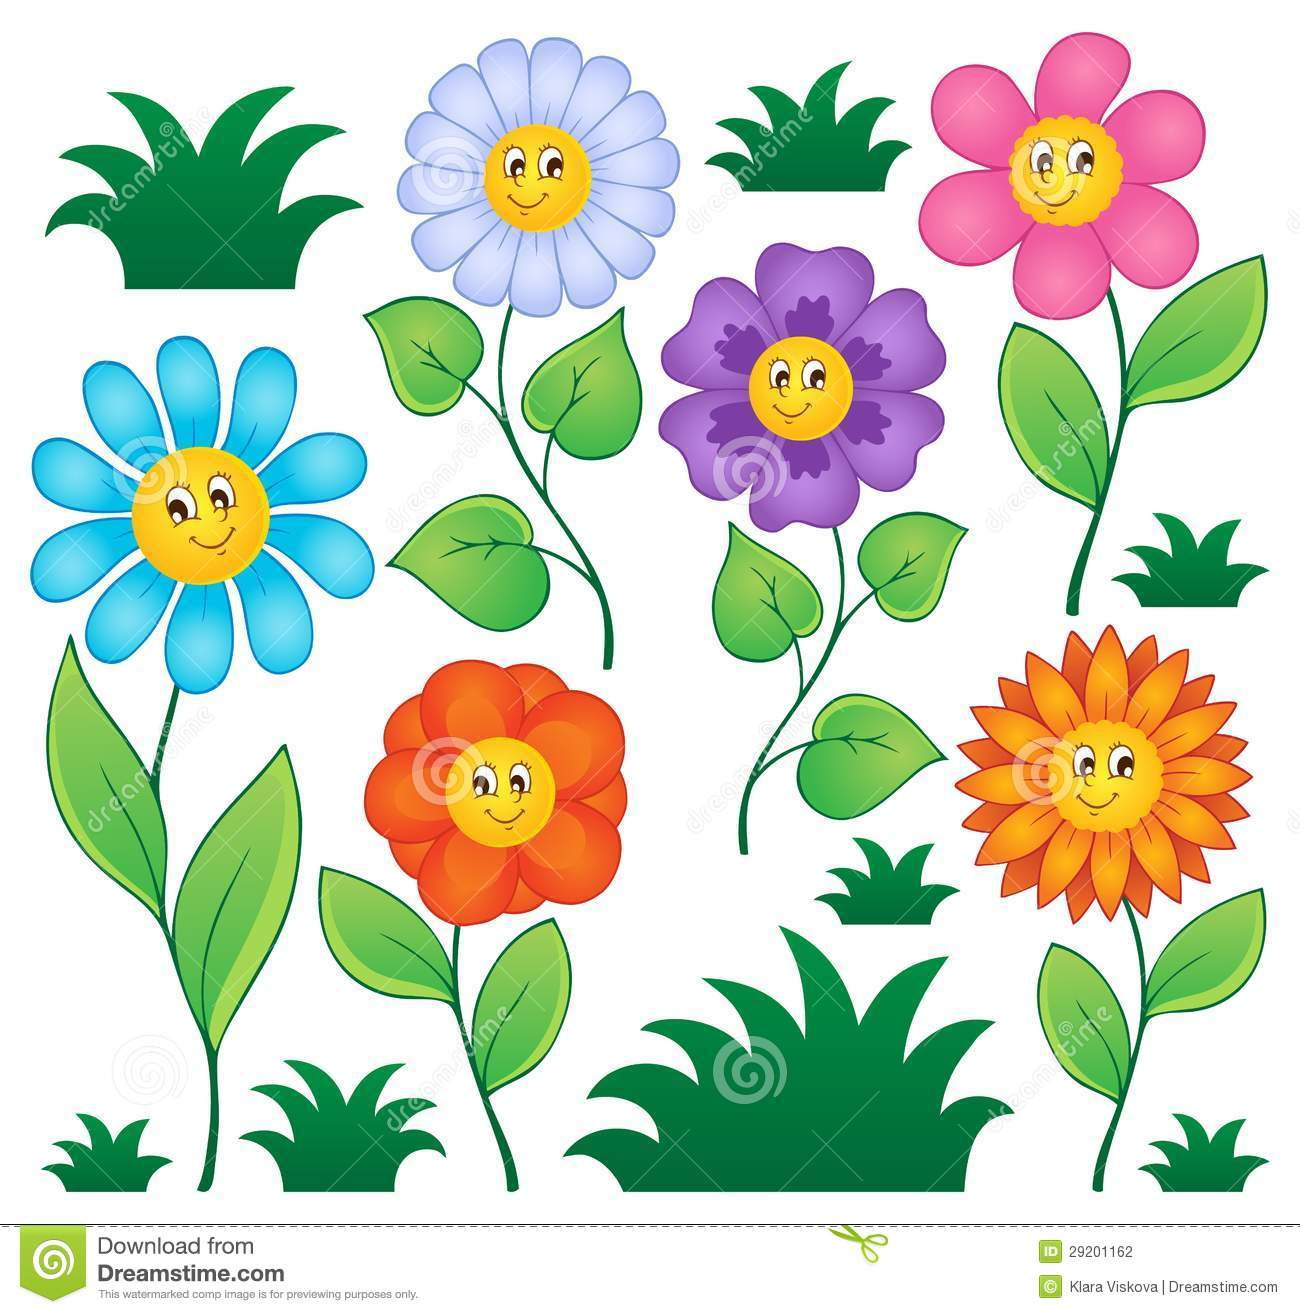 Picture of cartoon flowers picture library download Cartoon Flowers Collection Stock Photography - Image: 29201162 picture library download